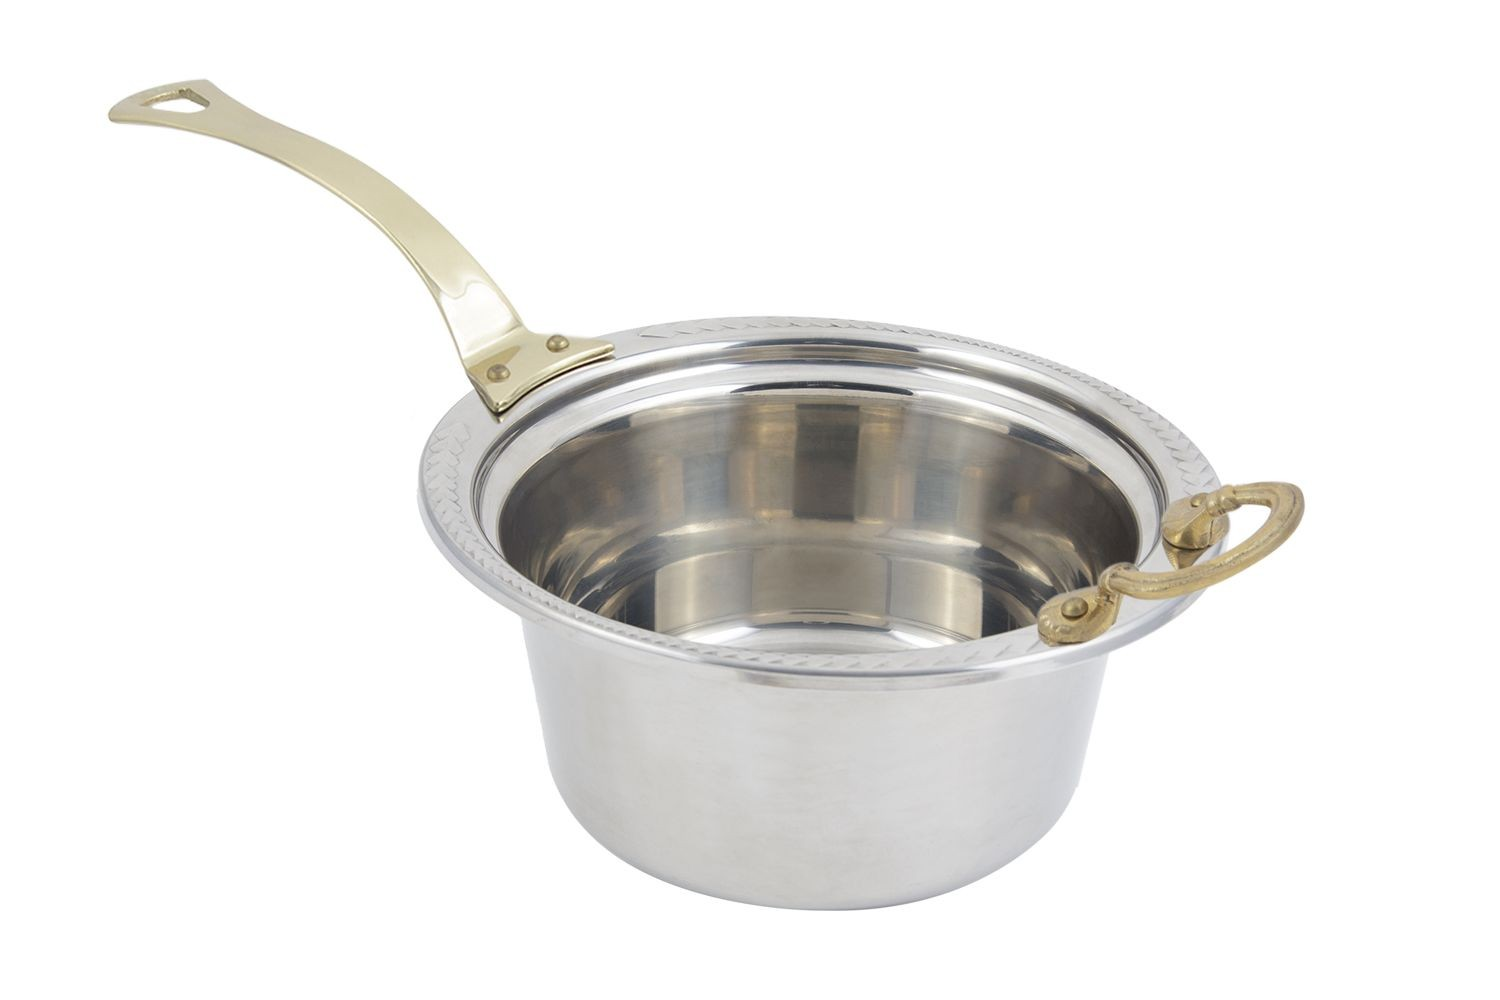 Bon Chef 5460HL Laurel Design Casserole Dish with Long Brass Handle, 5 Qt.